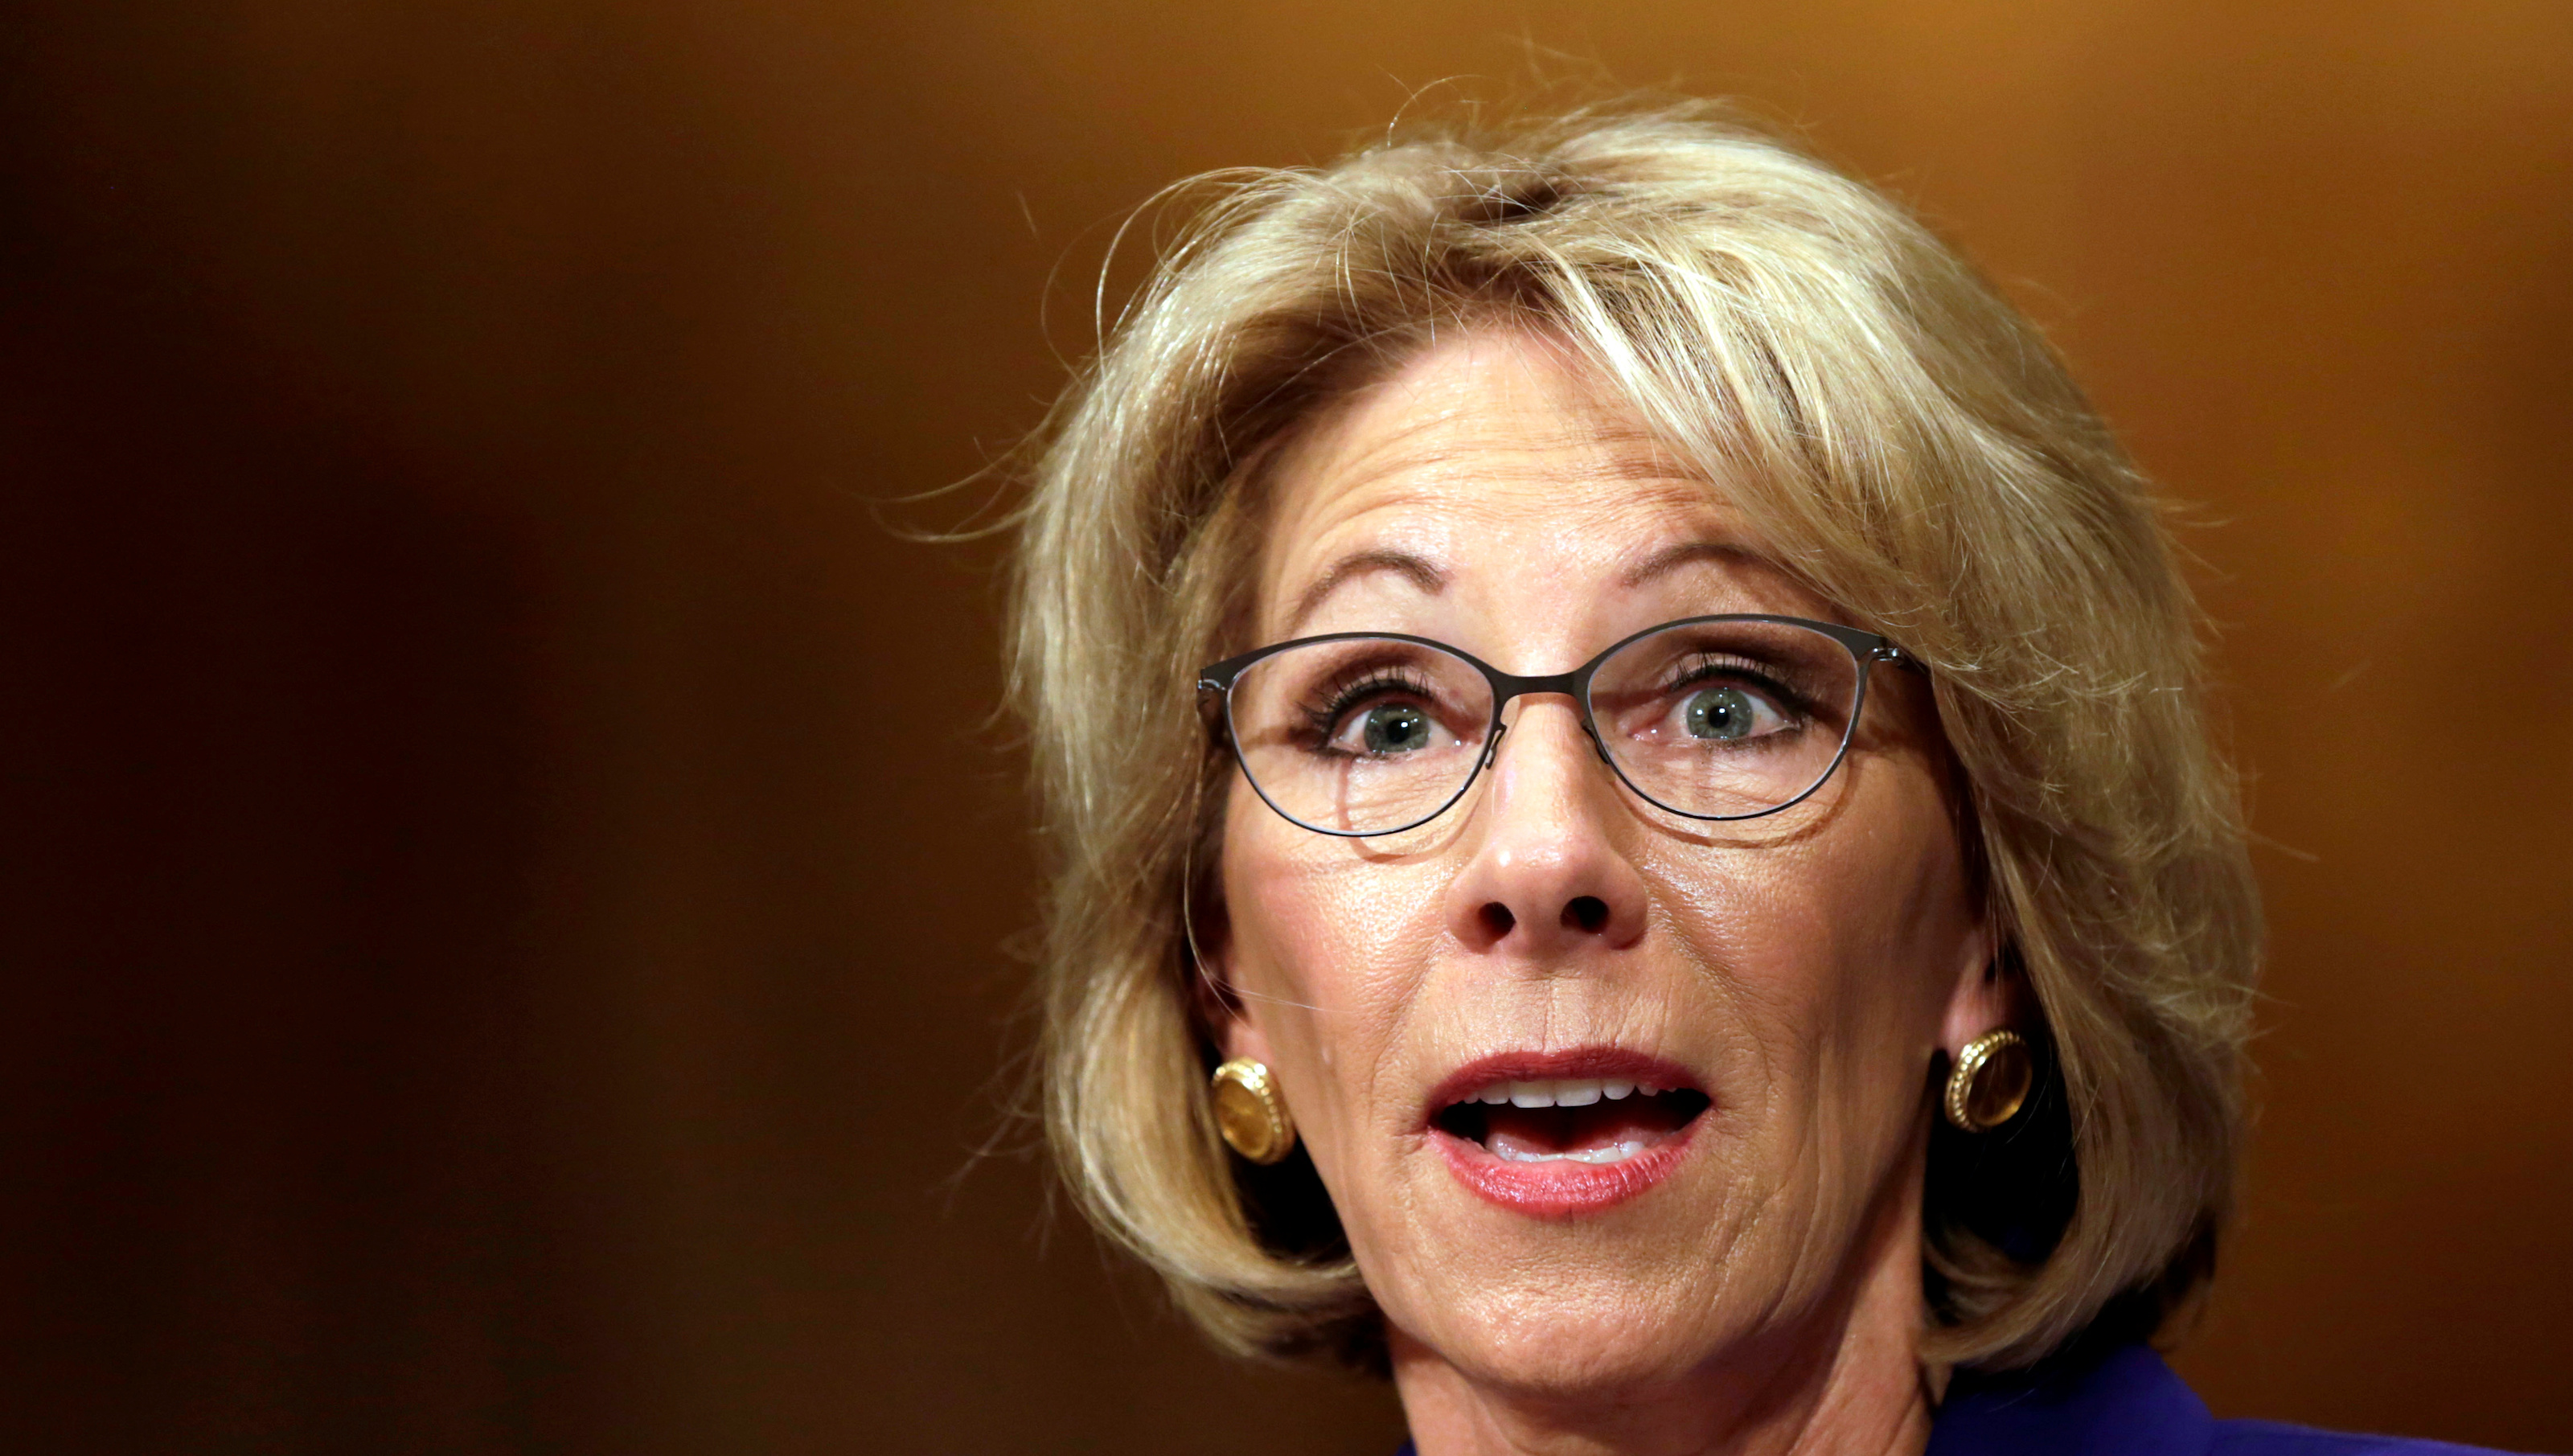 Betsy DeVos testifies before the Senate Health, Education and Labor Committee confirmation hearing to be next Secretary of Education on Capitol Hill in Washington, U.S., January 17, 2017. REUTERS/Yuri Gripas - RTSVZFU